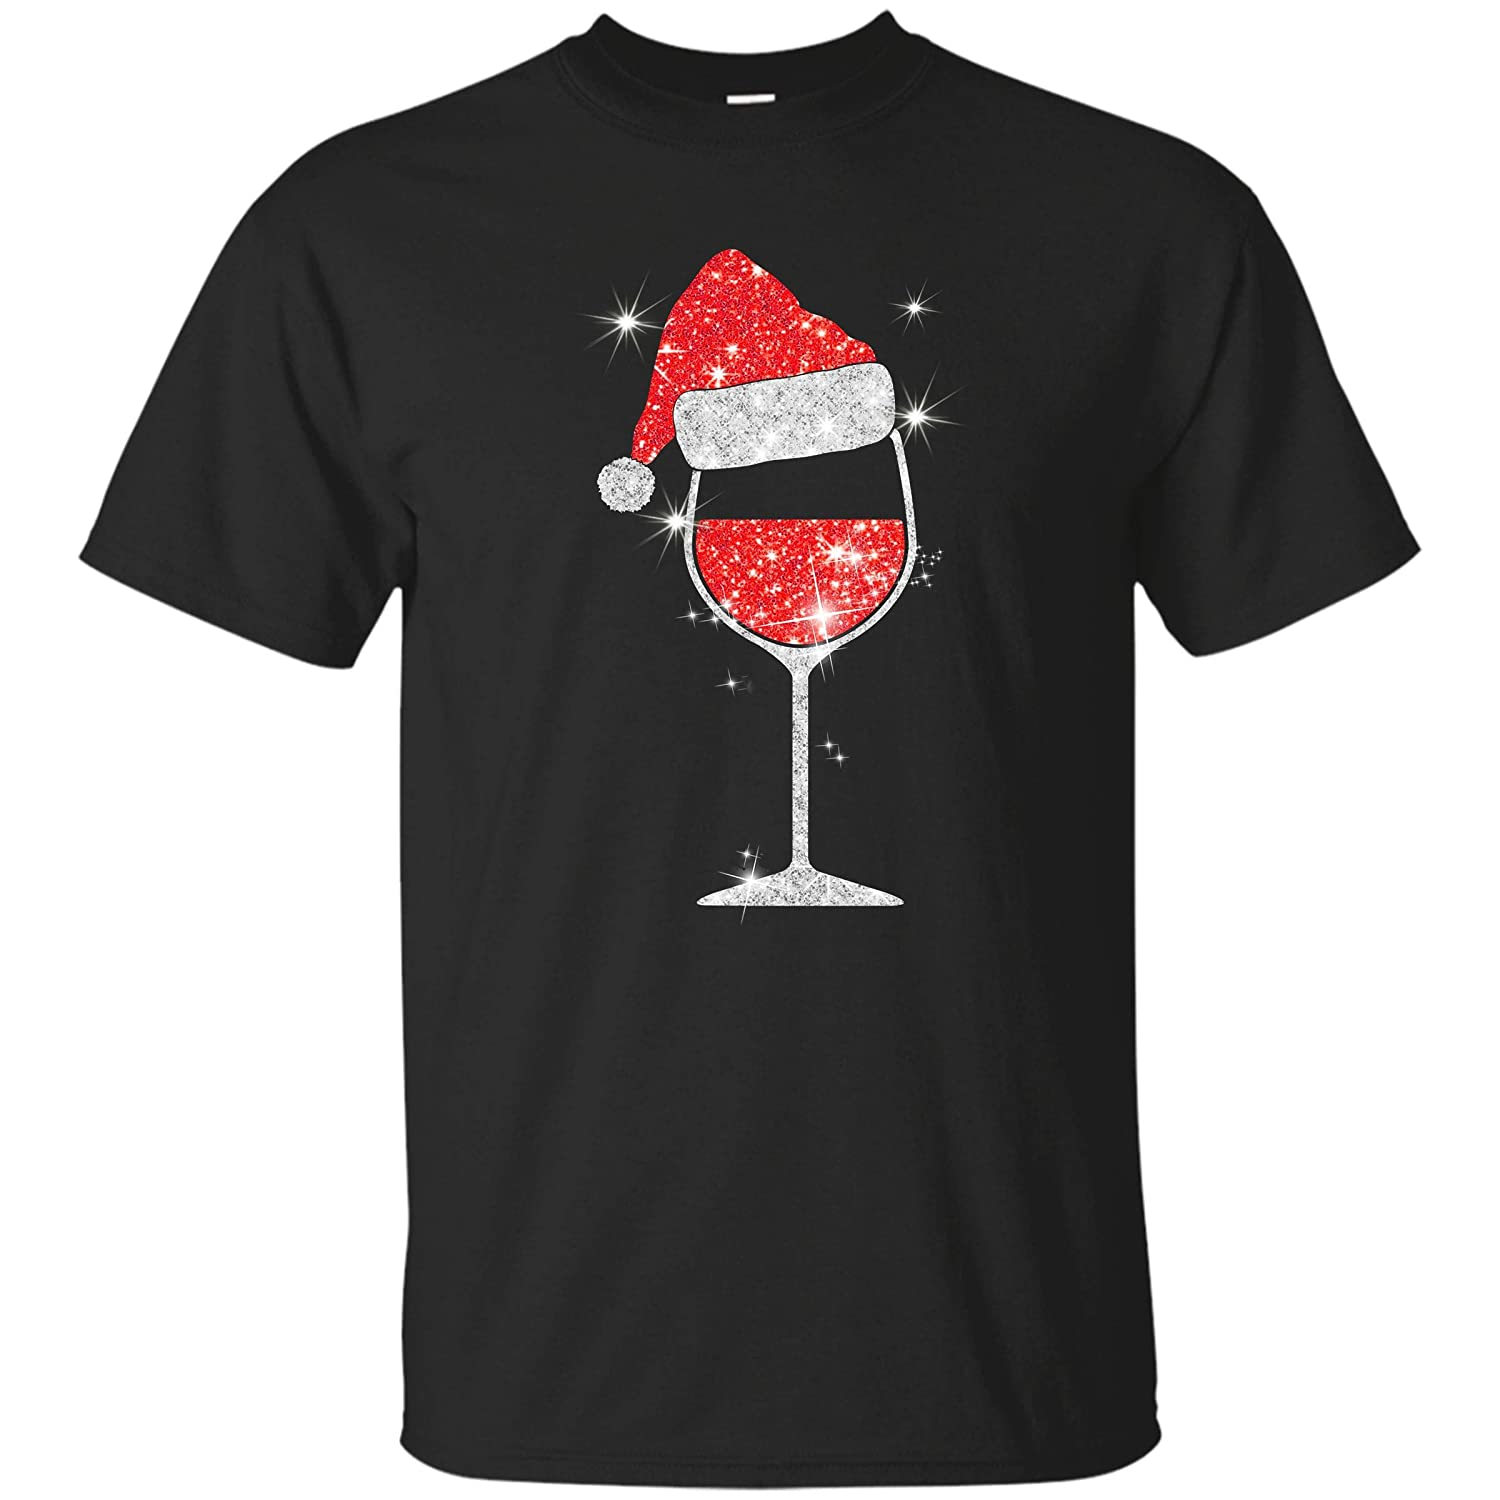 Moctee Xmas T-Shirt Wine Christmas Sparkling Glass Cute Men Women Tshirt CA-181101-DY.MOC.HT.MTS-131